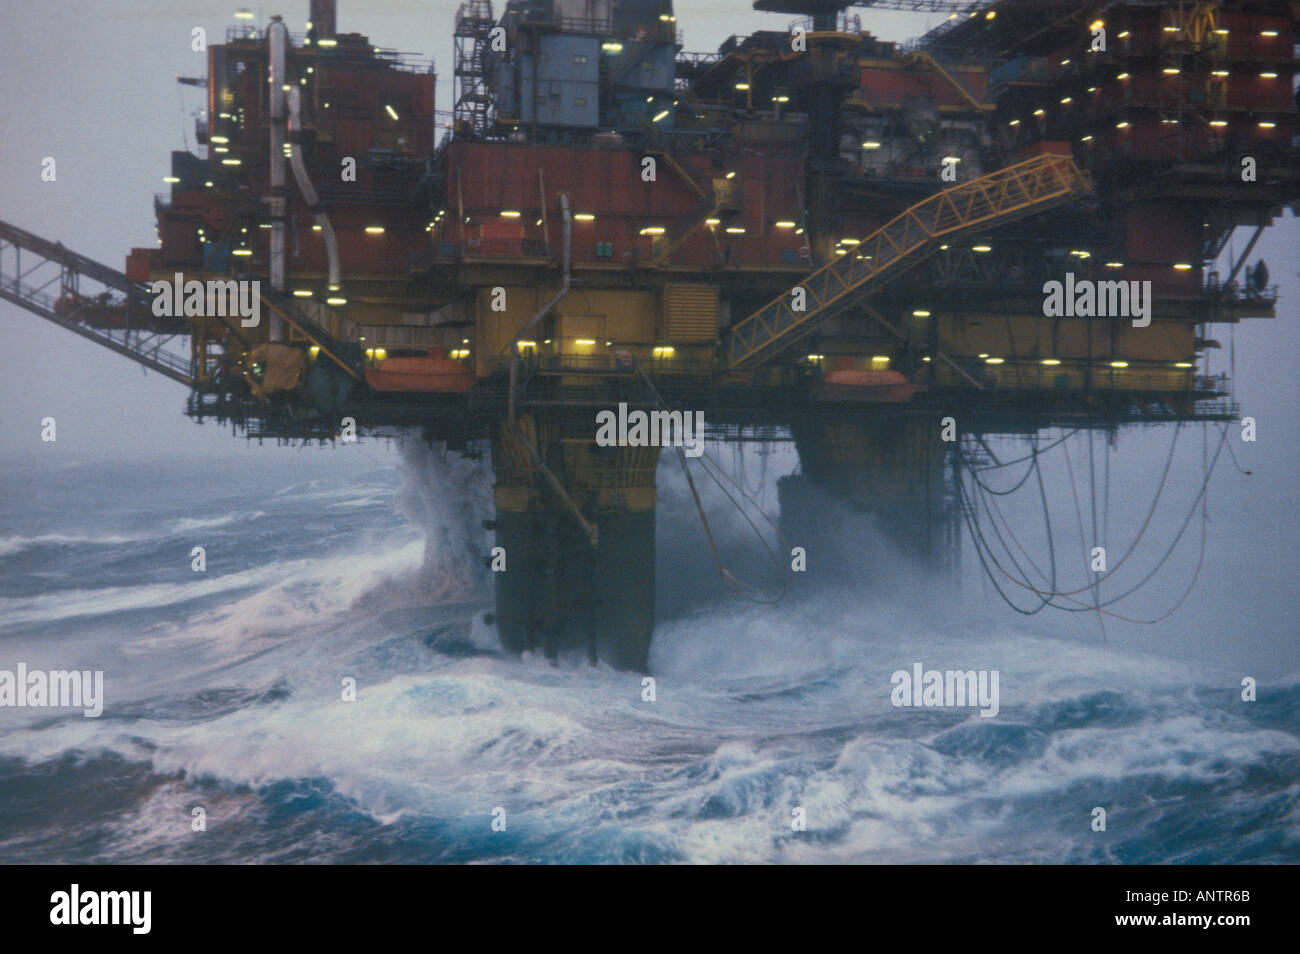 shell s brent bravo oil rig in a storm stock photo 5093226 alamy